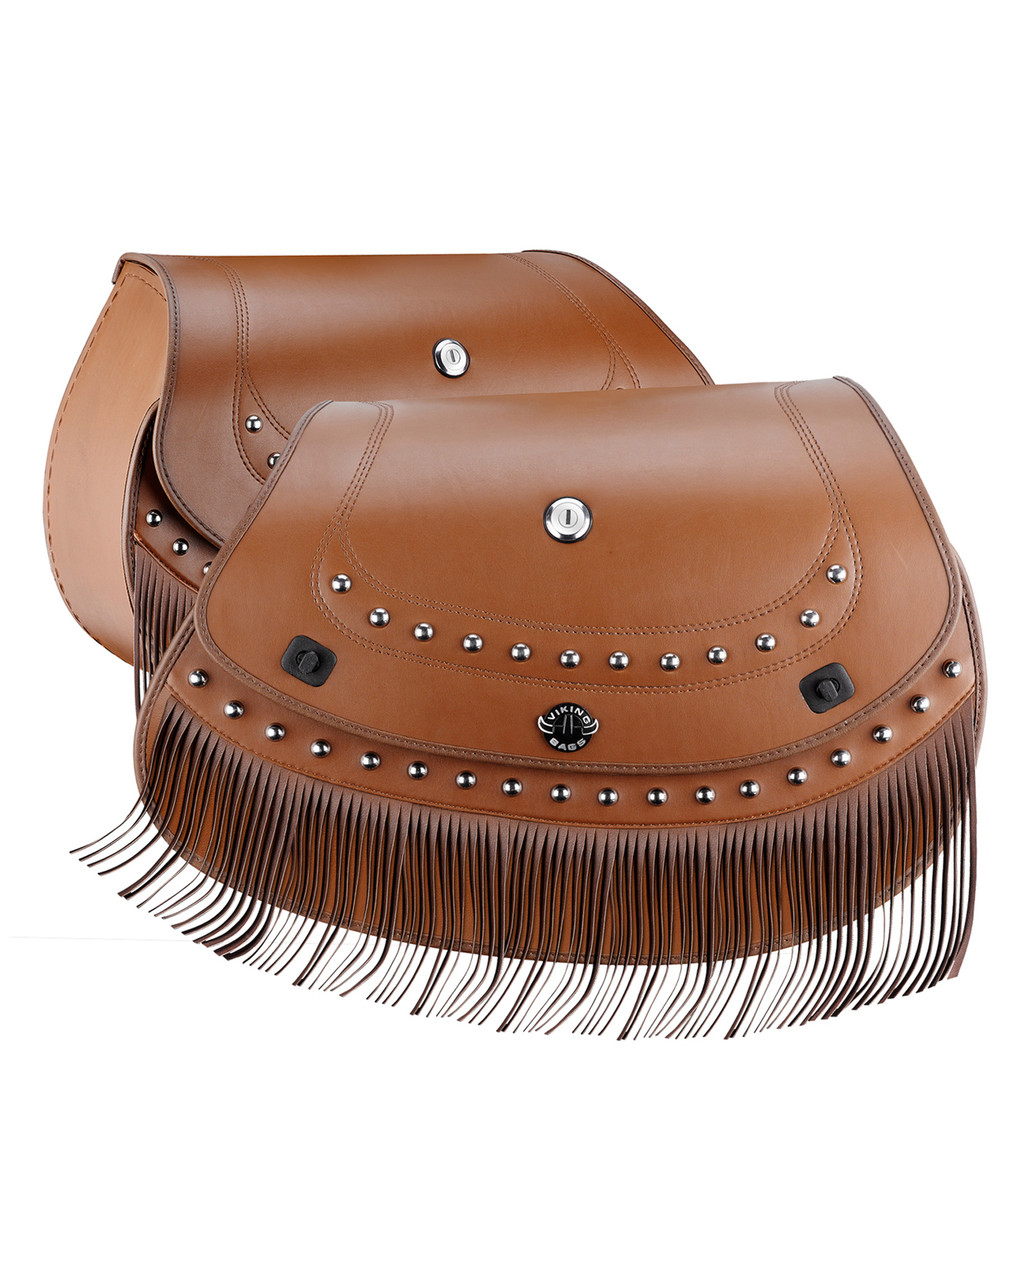 Indian Chief Vintage Viking Indian Specific Brown Leather Motorcycle Saddlebags Both Bags View